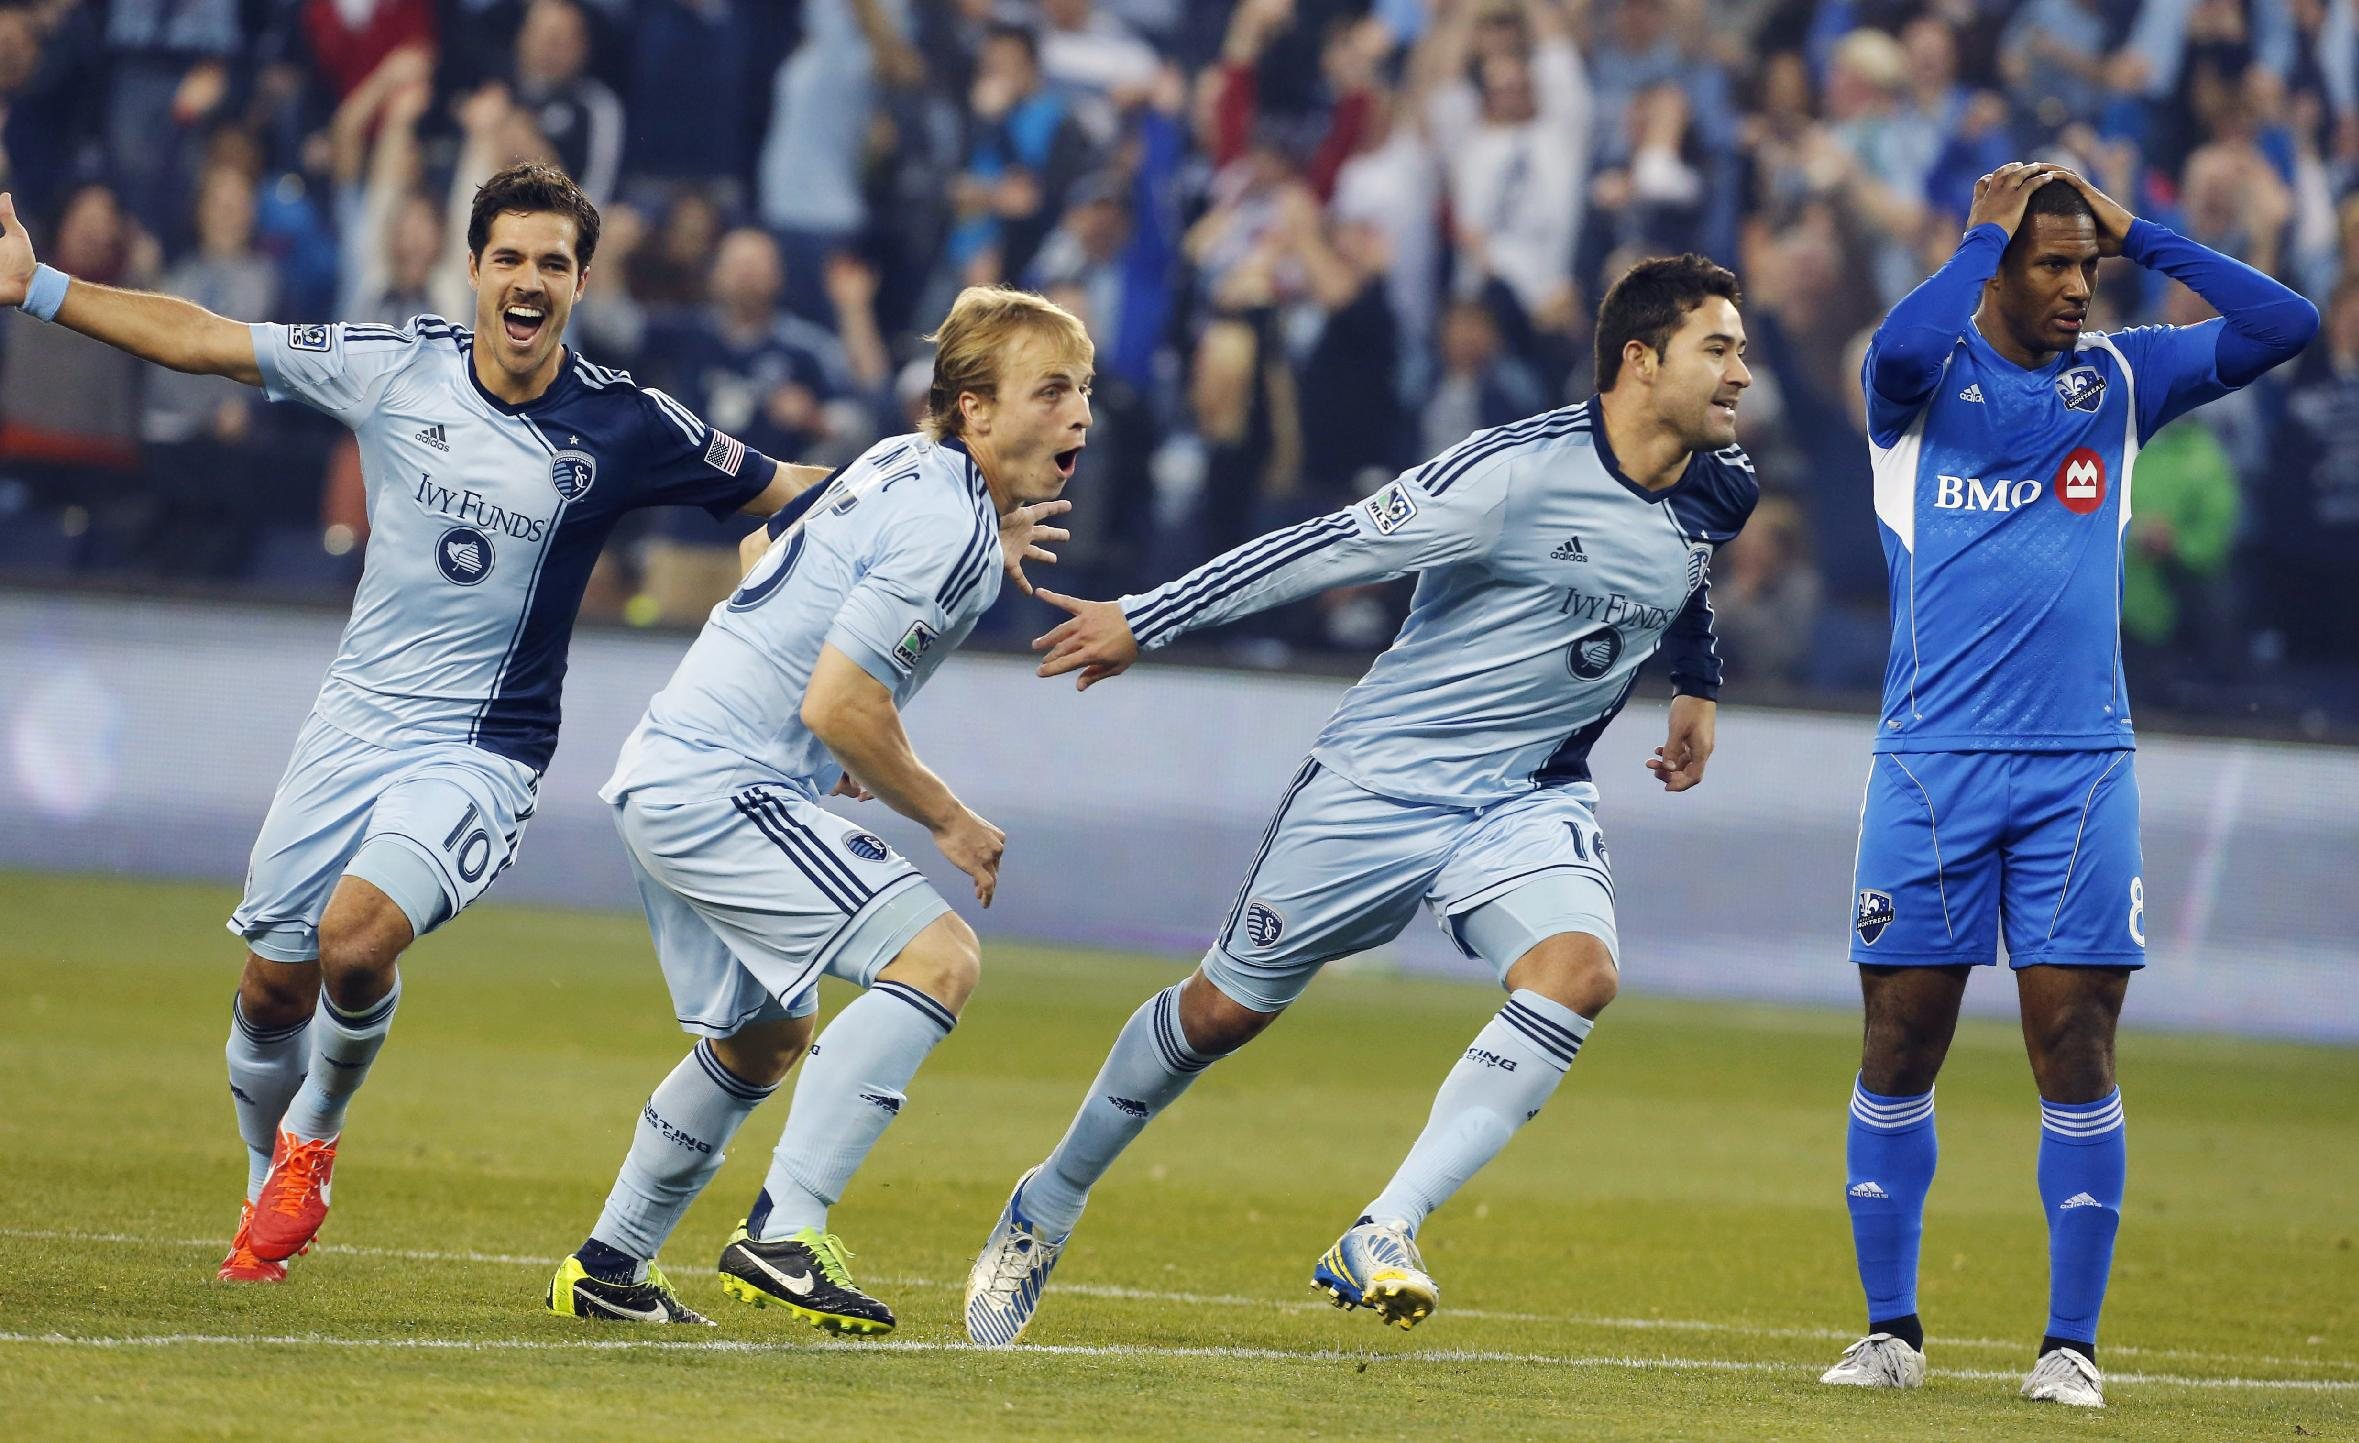 Sporting Kansas City beat Fire 2-1